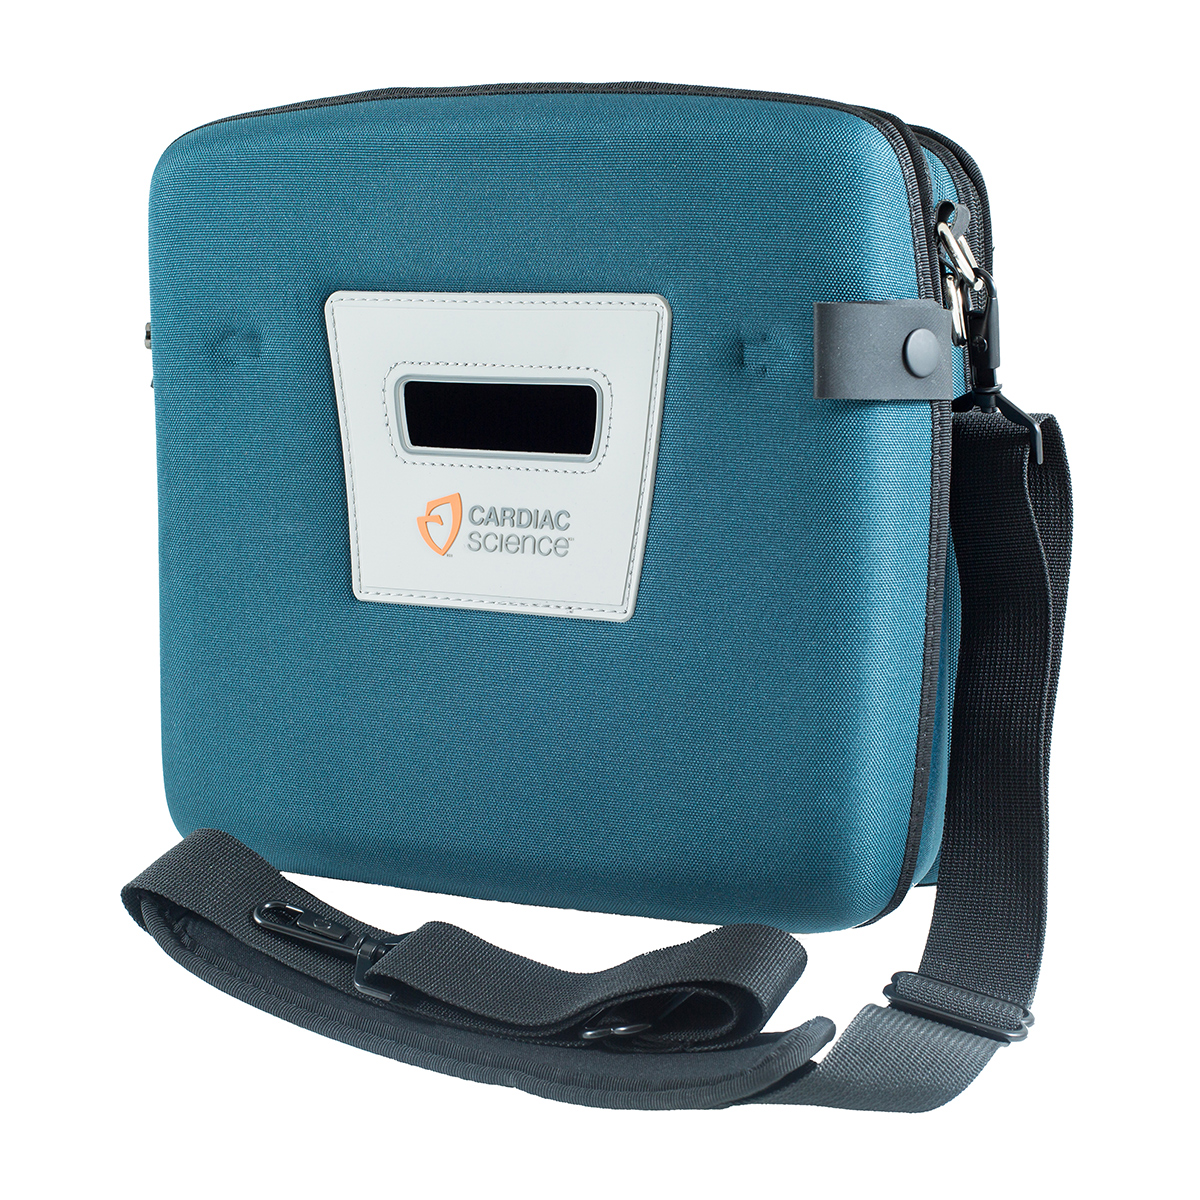 Carry Case for Cardiac Science™ Powerheart® Defibrillators